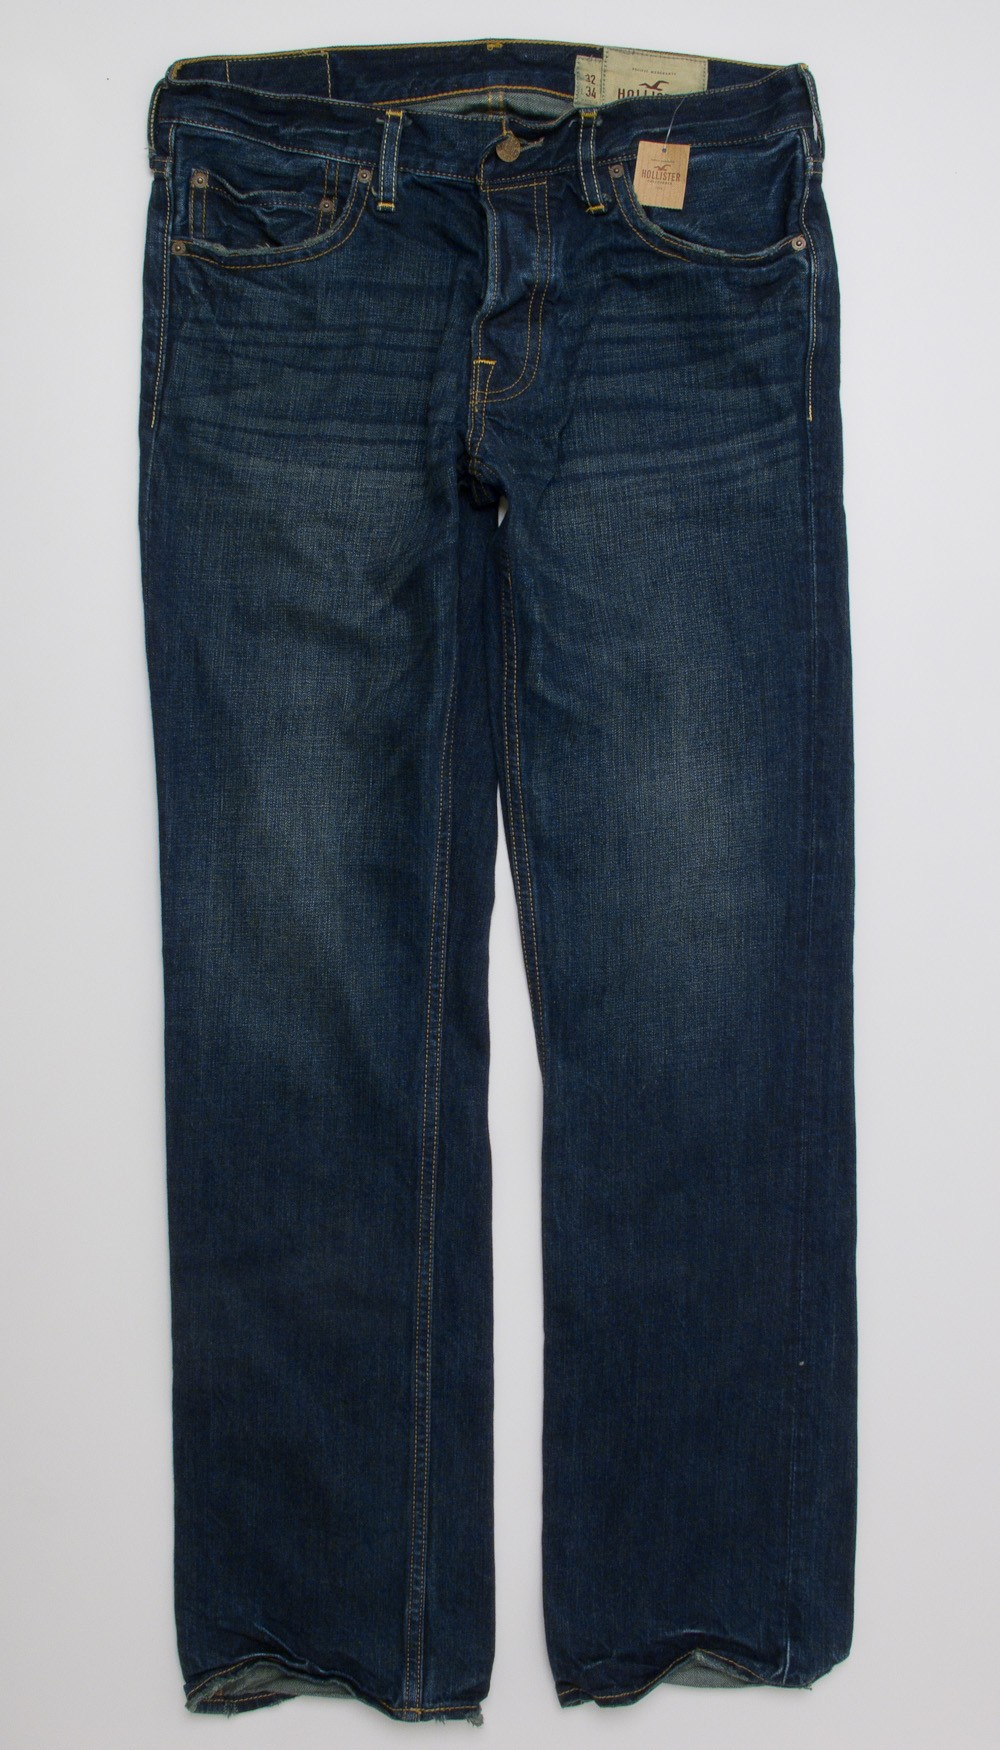 hollister jeans for boys - photo #18